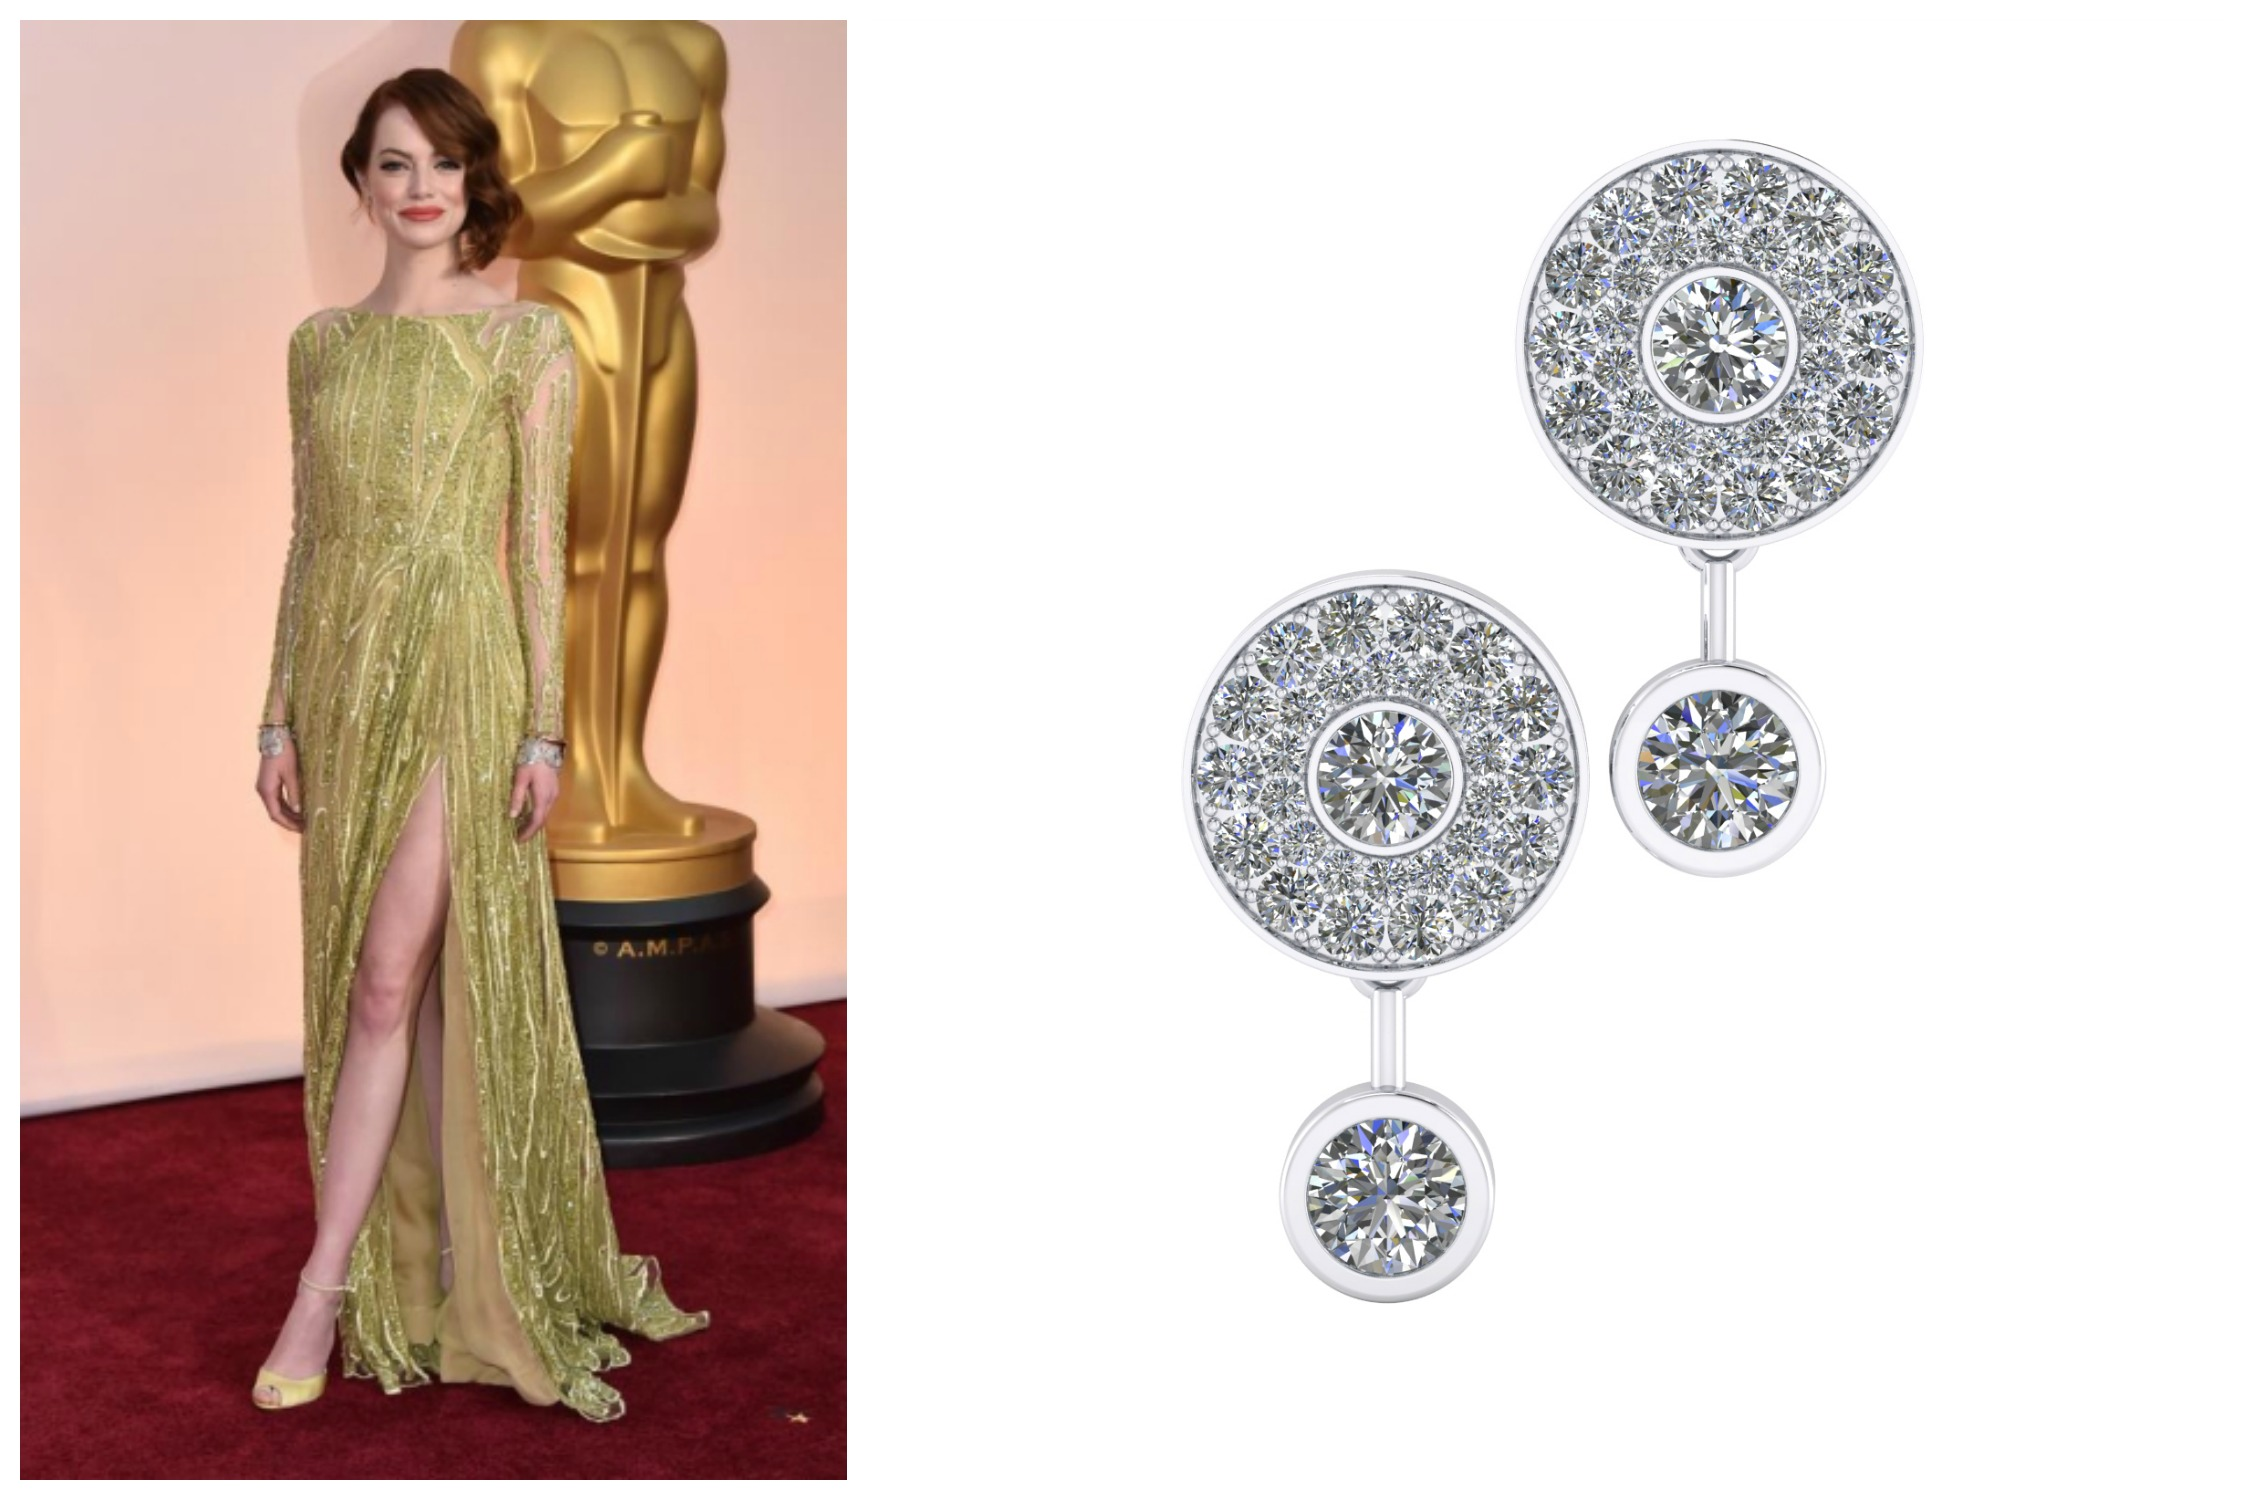 Emma Stone CP - Beautiful earrings in 18k white gold and 68 diamonds Clemency Peris